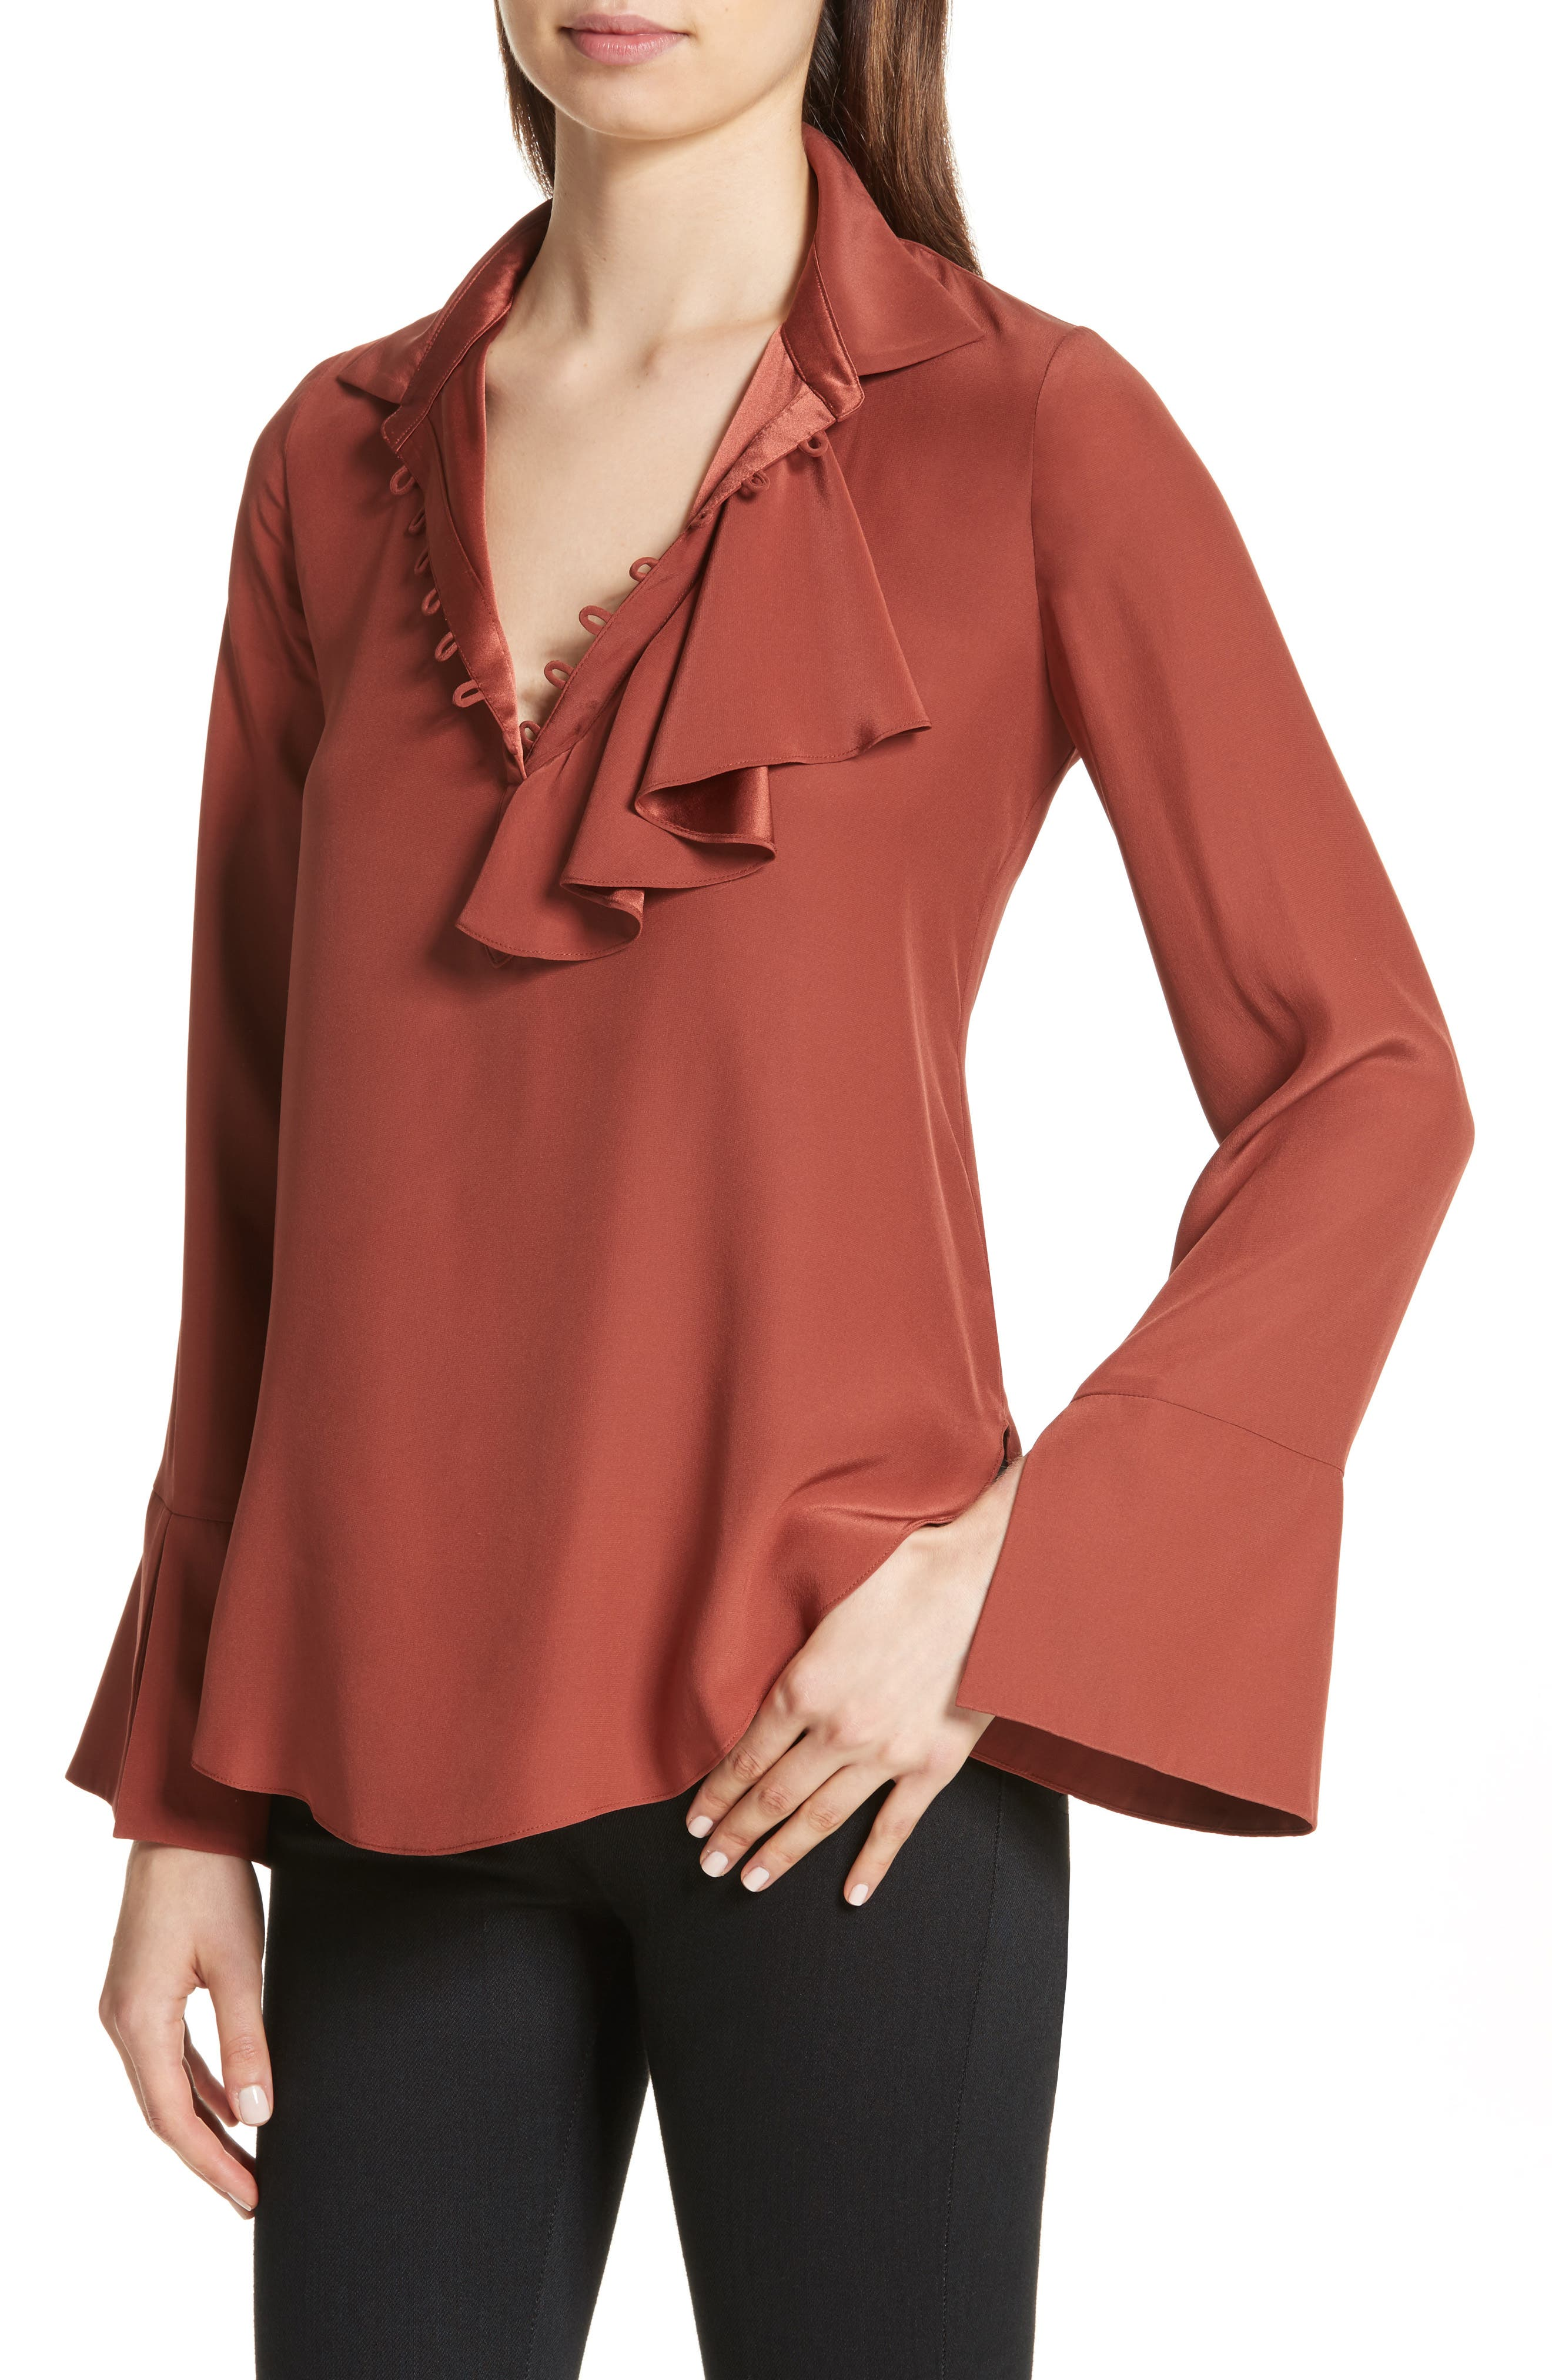 Norla Silk Bow Blouse,                             Alternate thumbnail 4, color,                             Tobacco